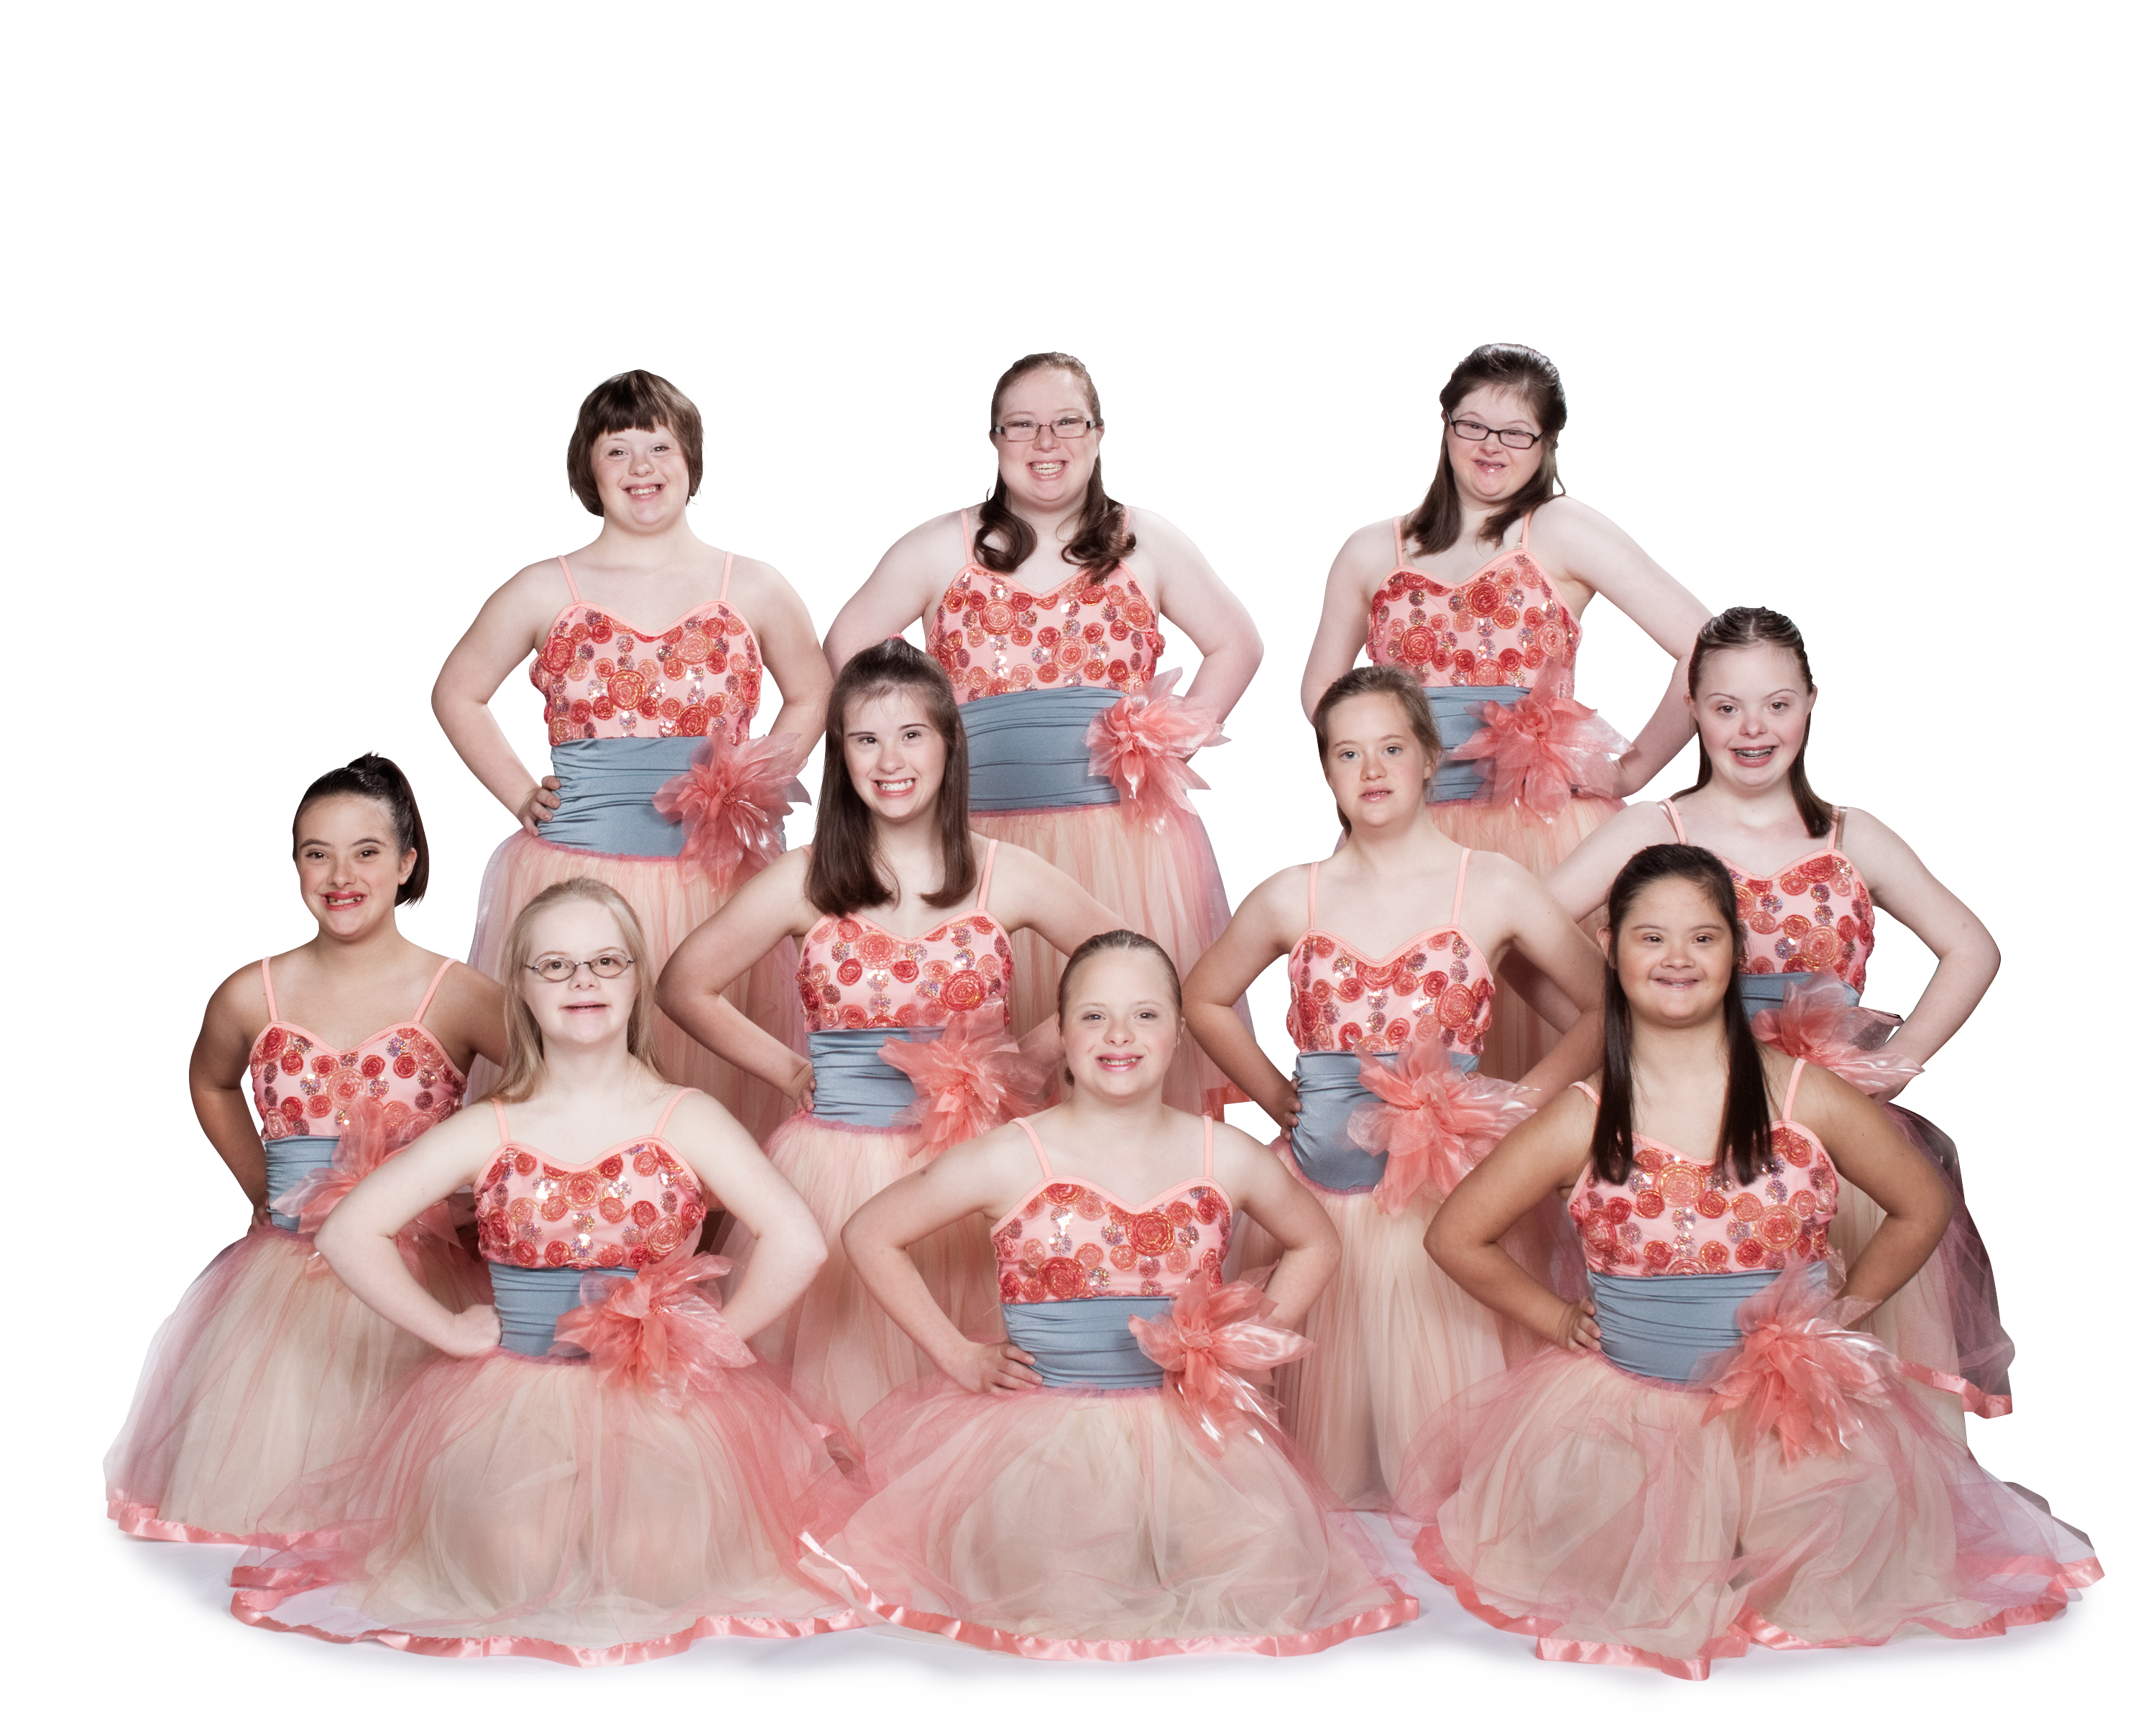 Introducing the Foster-Schmidt Dance Company!